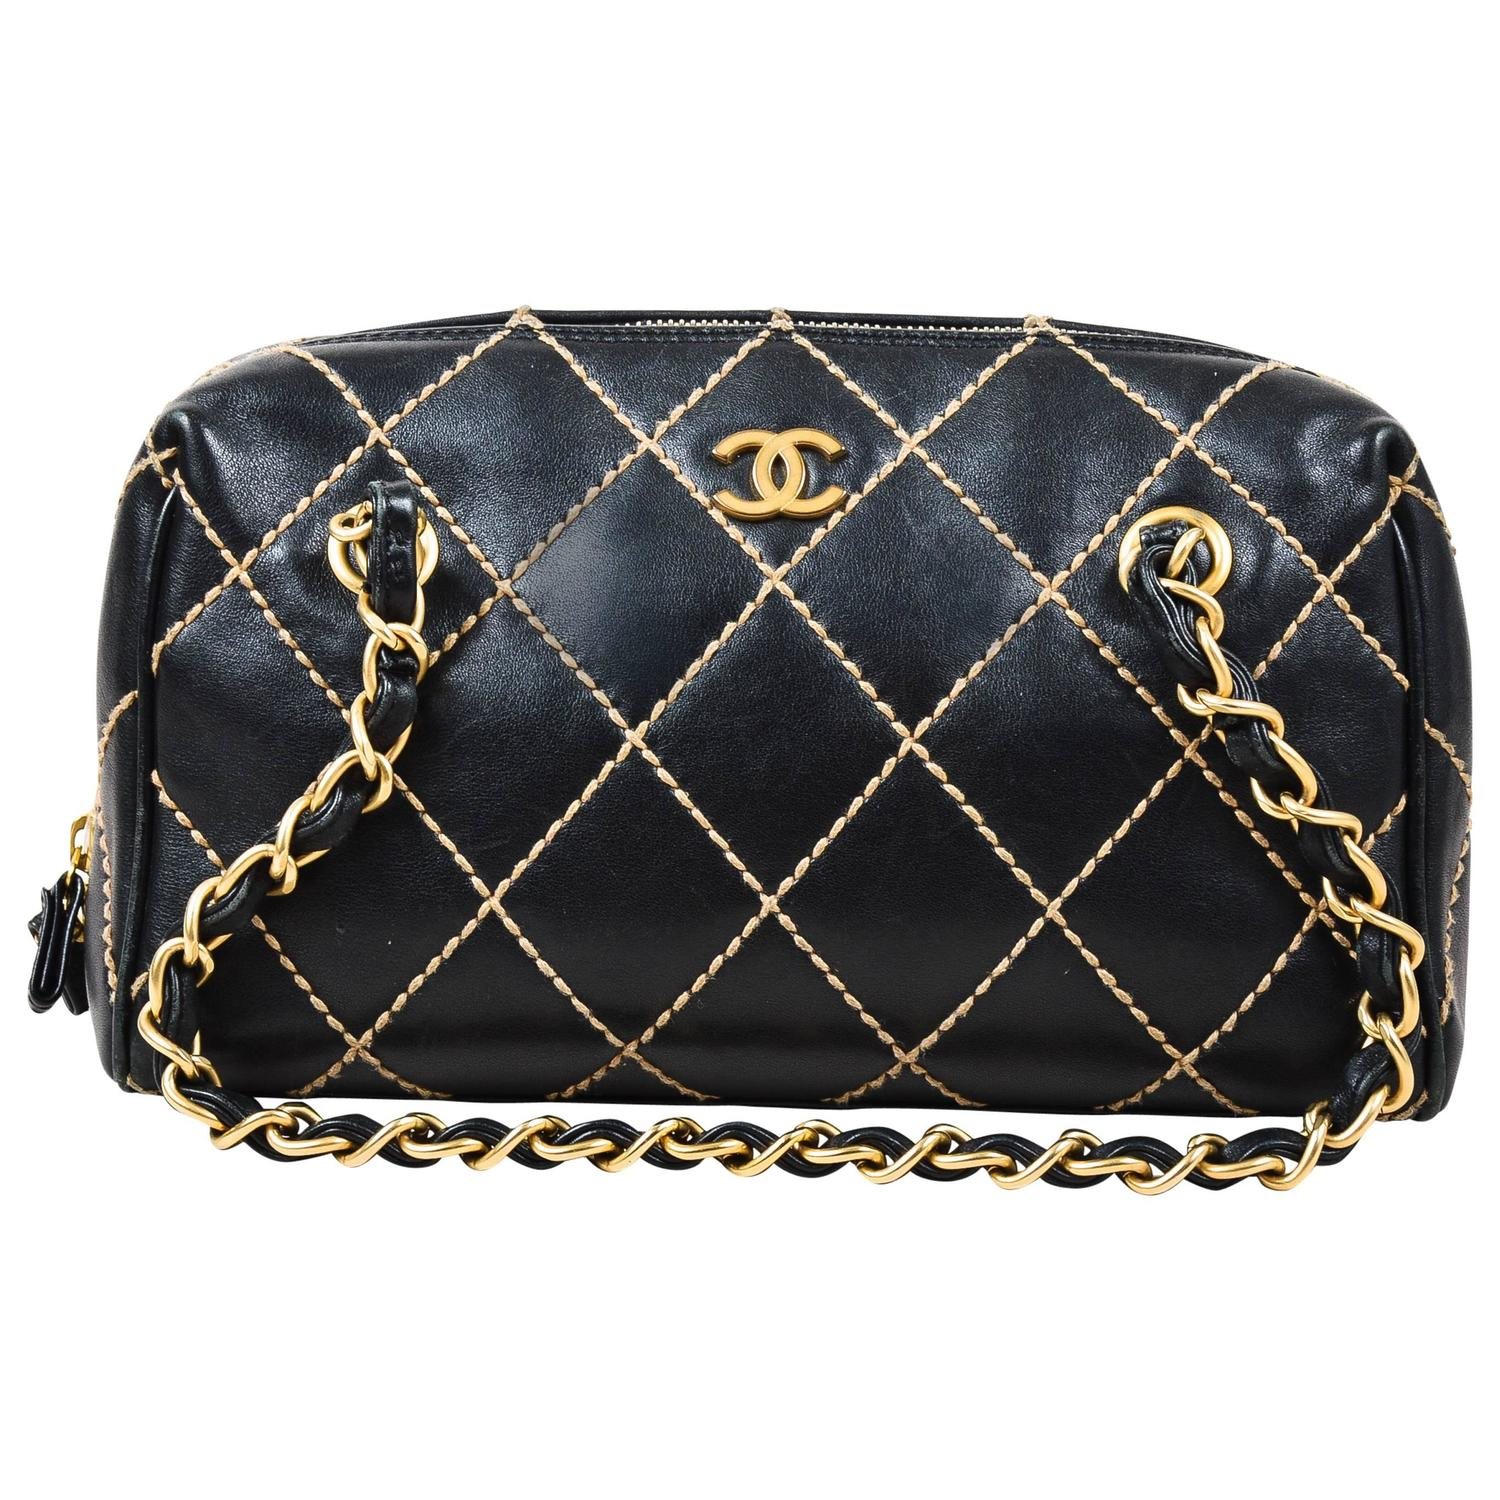 Leather quilted handbags and purses - Chanel Black Beige Leather Quilted Wild Stitch Small Shoulder Bag At 1stdibs